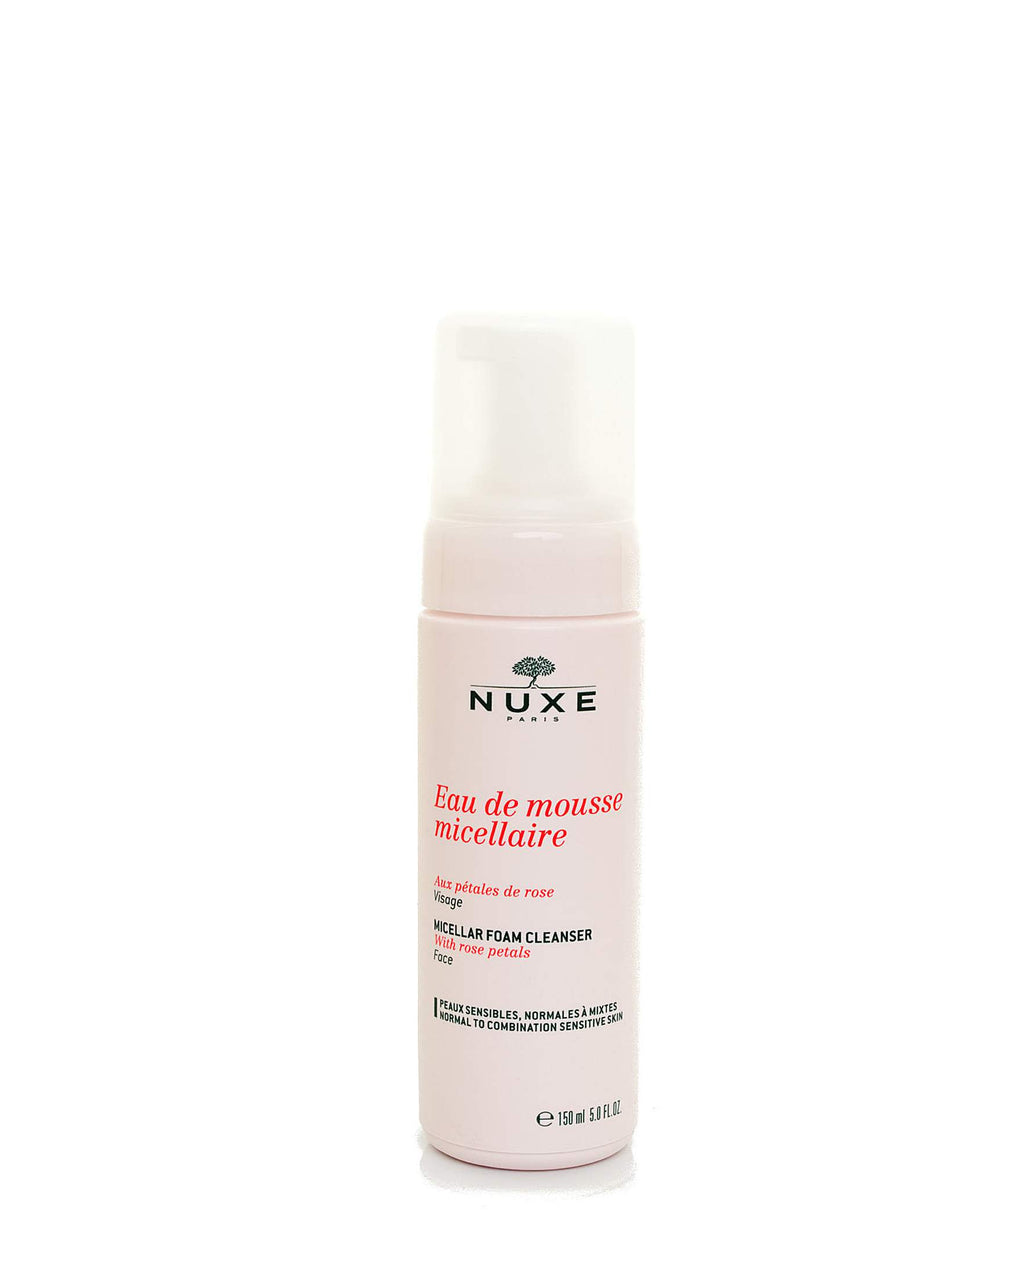 Nuxe Micellar Foam Cleanser with Rose Petals - 30% OFF